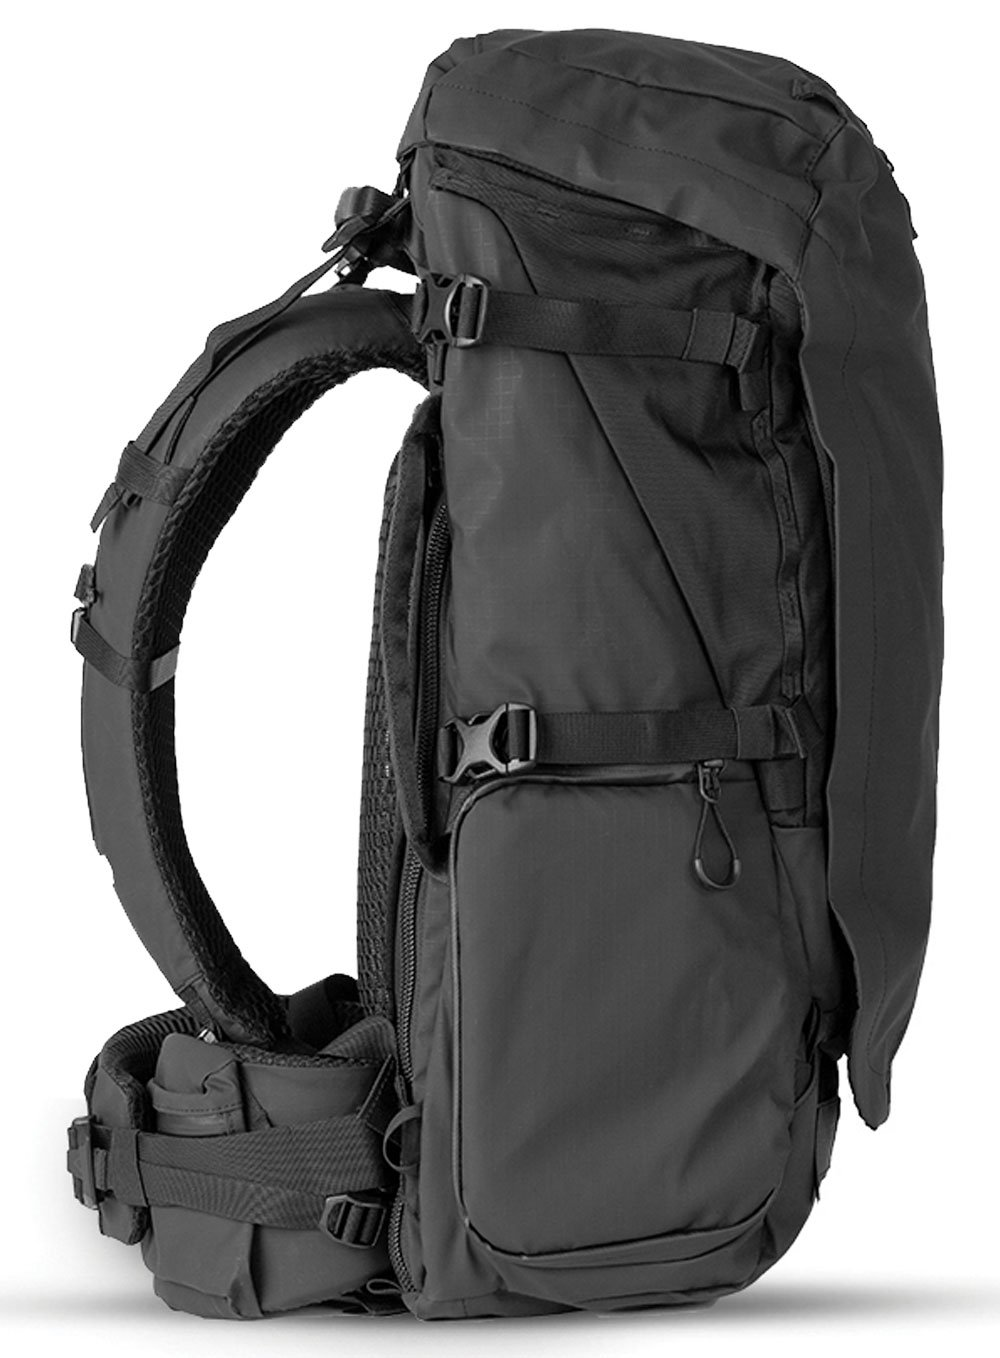 WANDRD designed a backpack for travelers, adventurers, and wanderers